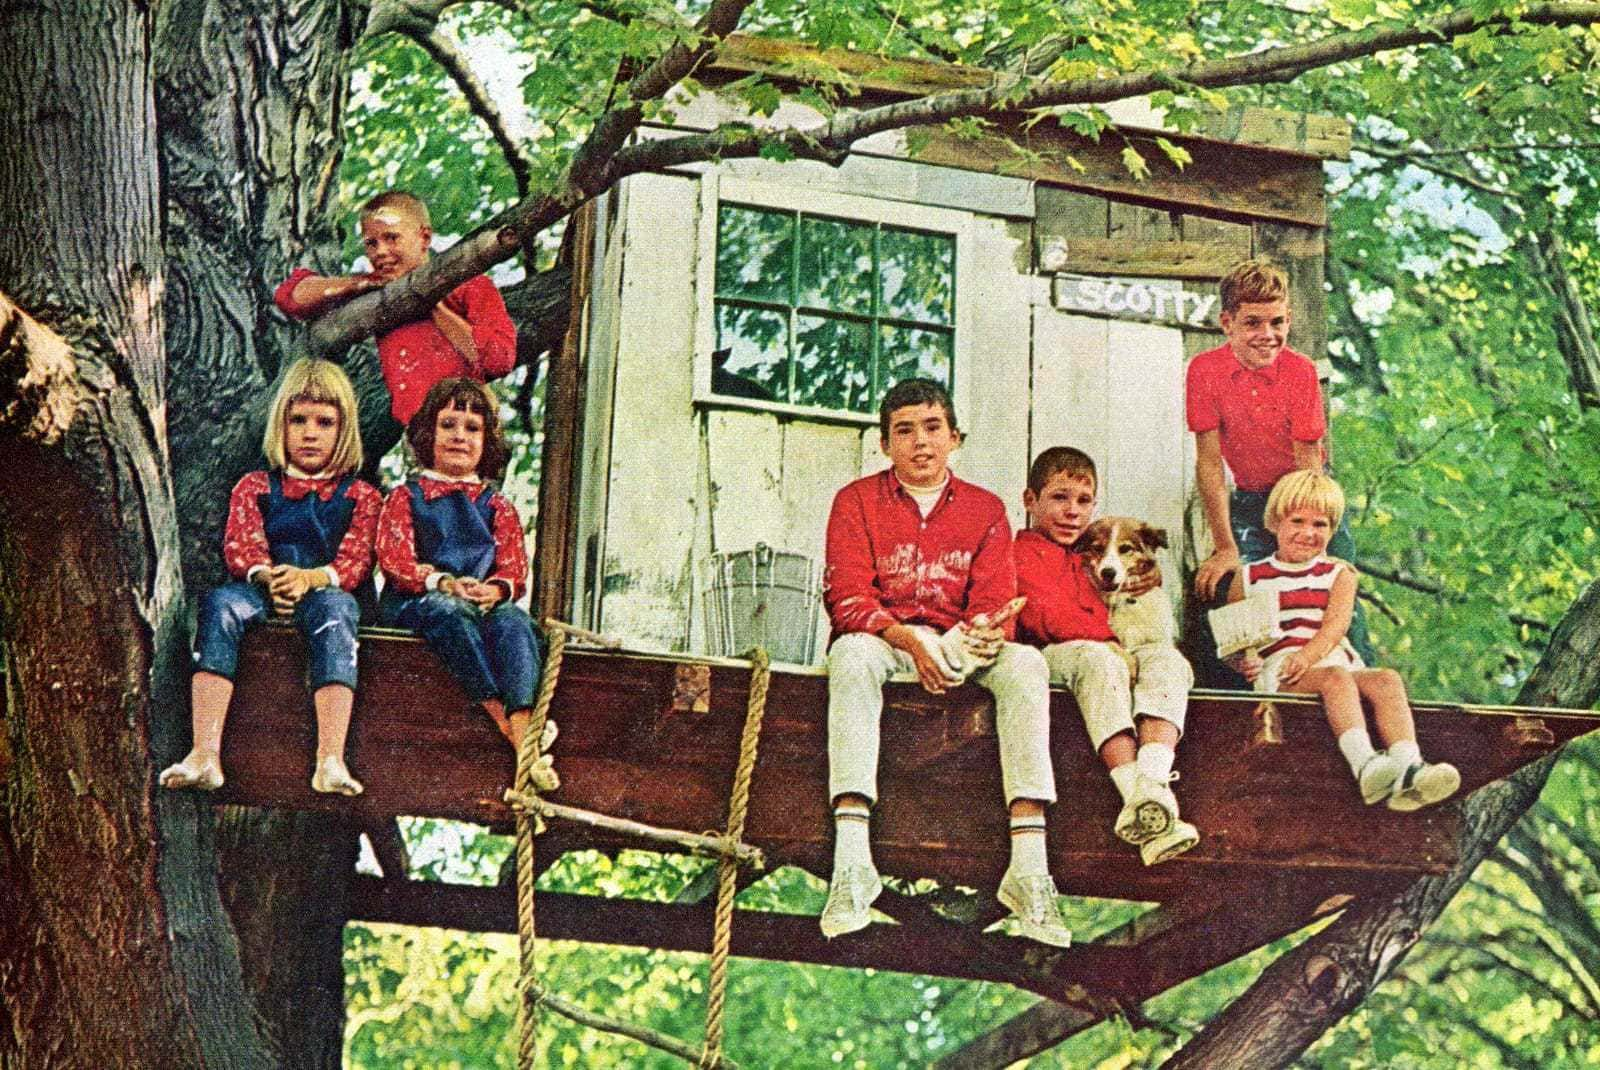 The old-fashioned joys of a tree house